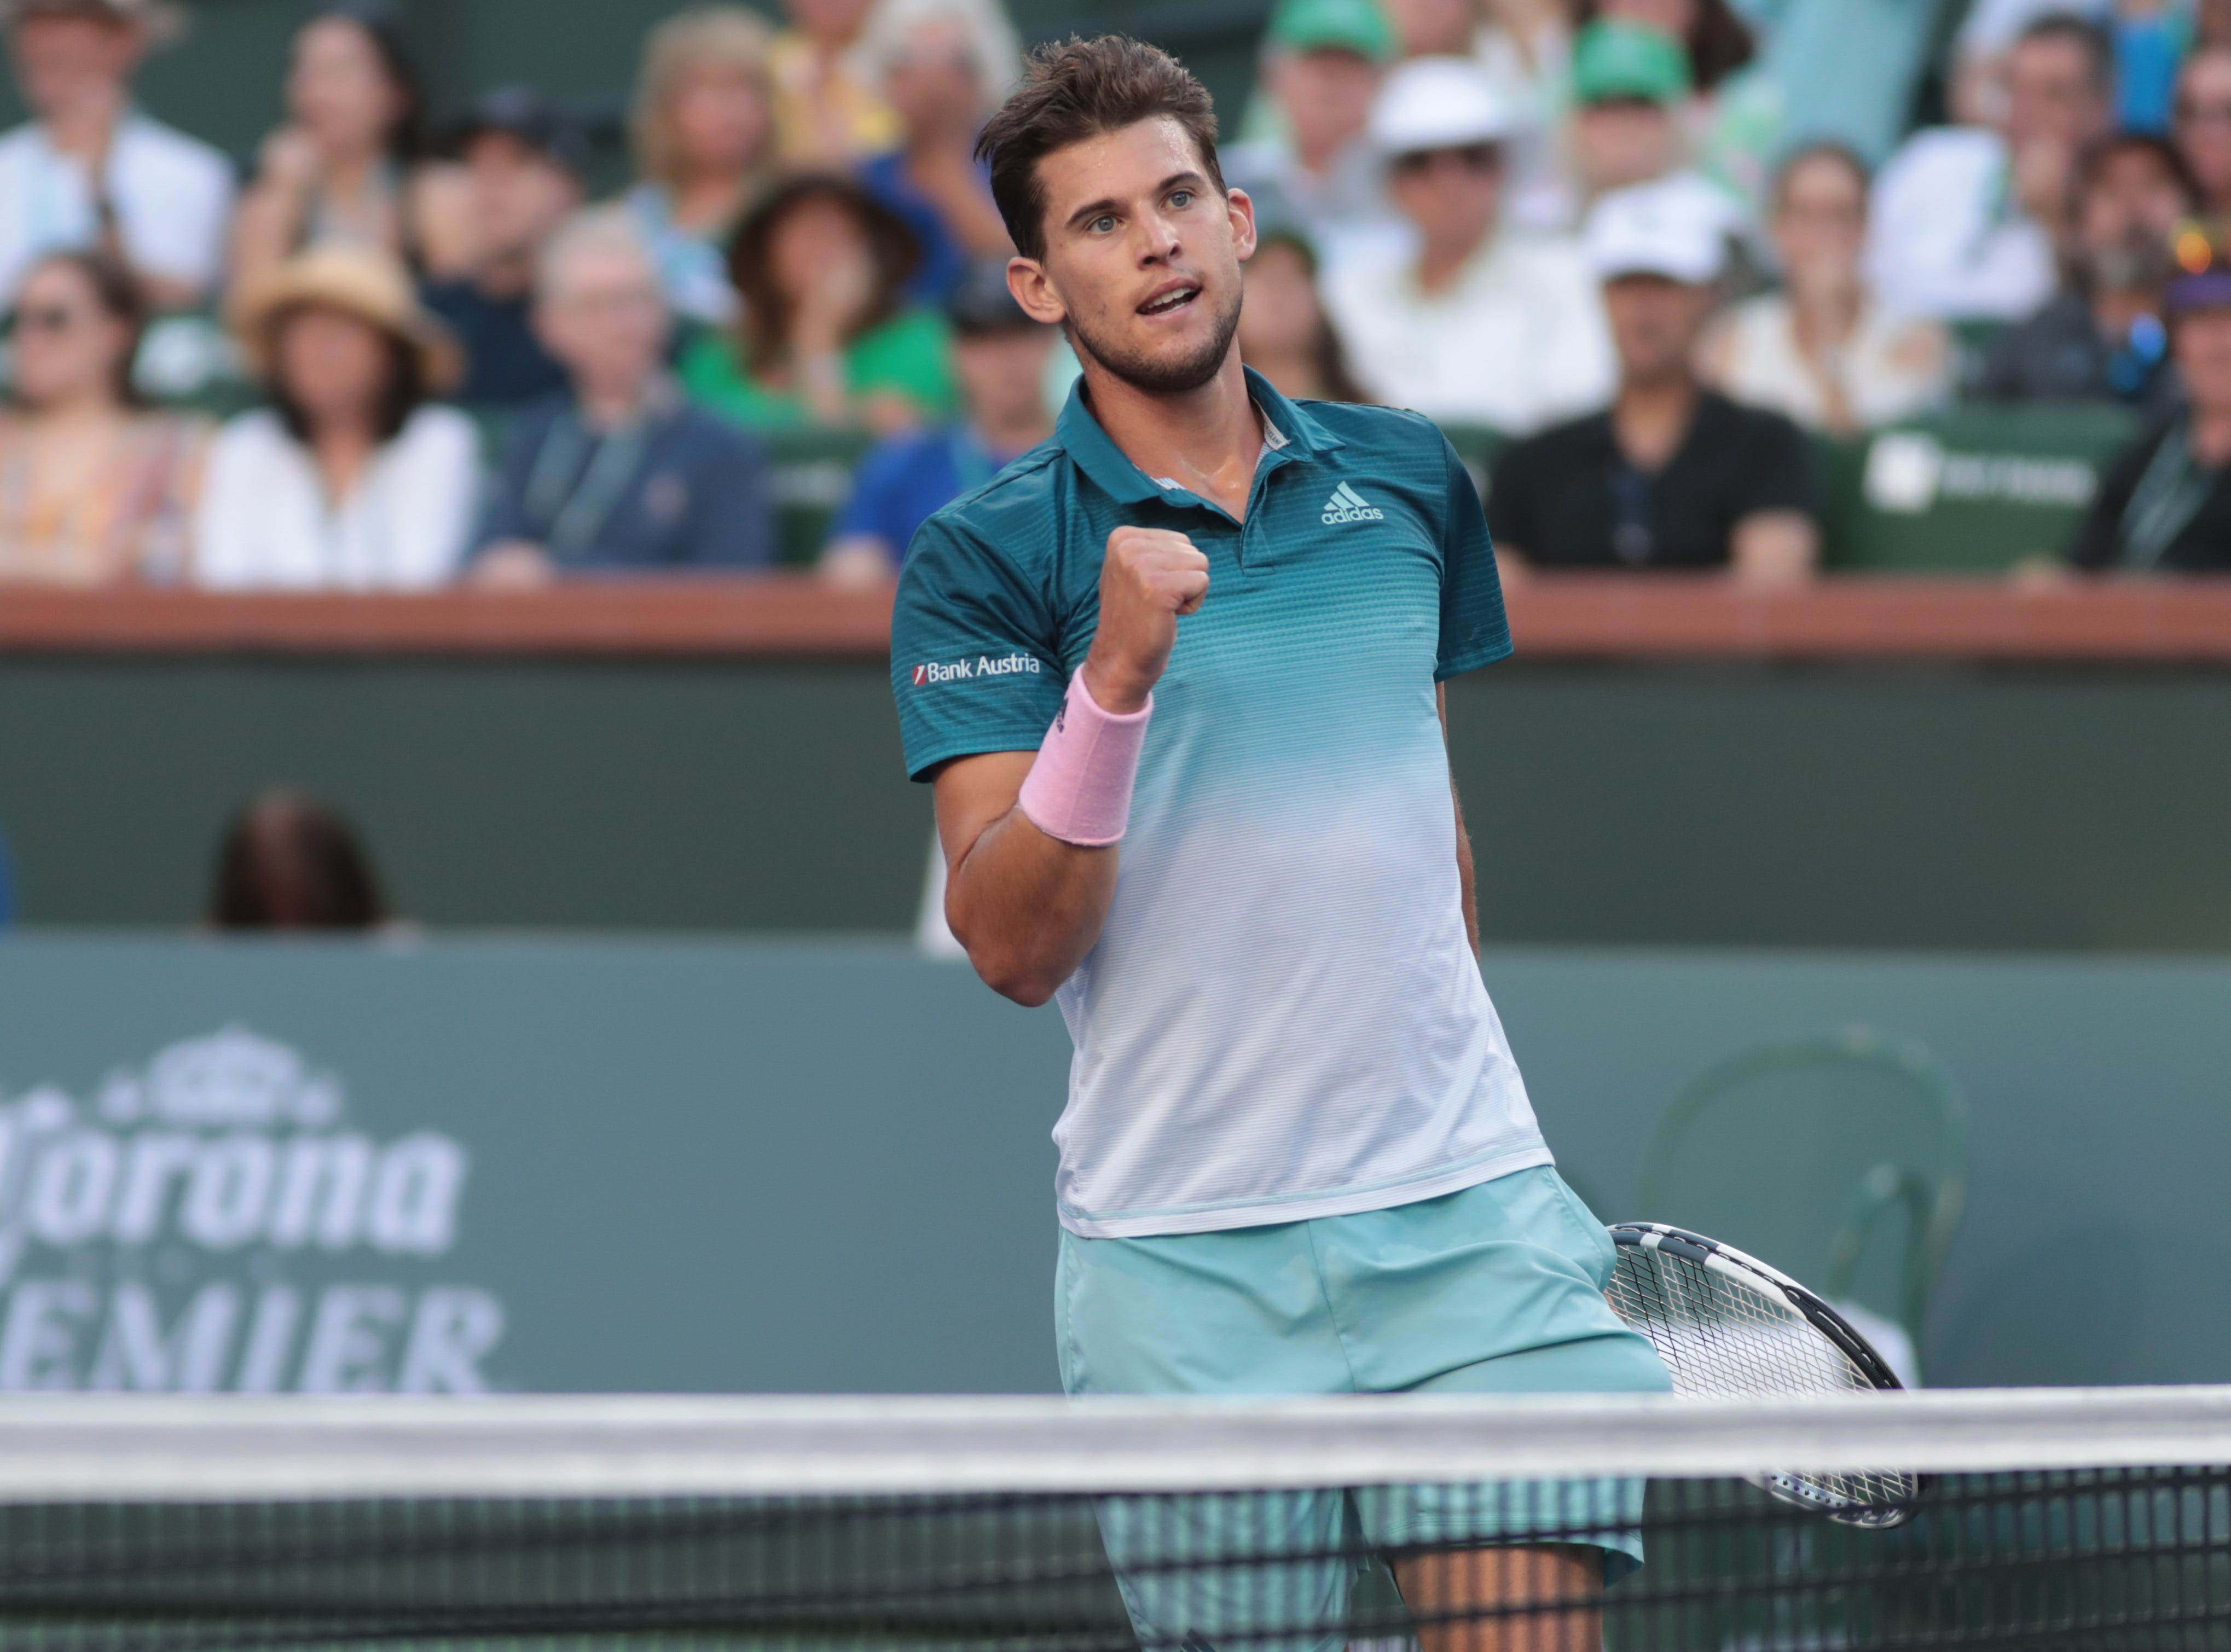 Dominic Thiem reacts after winning a point against Roger Federer in the third set of the finals of the BNP Paribas Open in Indian Wells, Calif., March 17, 2019.